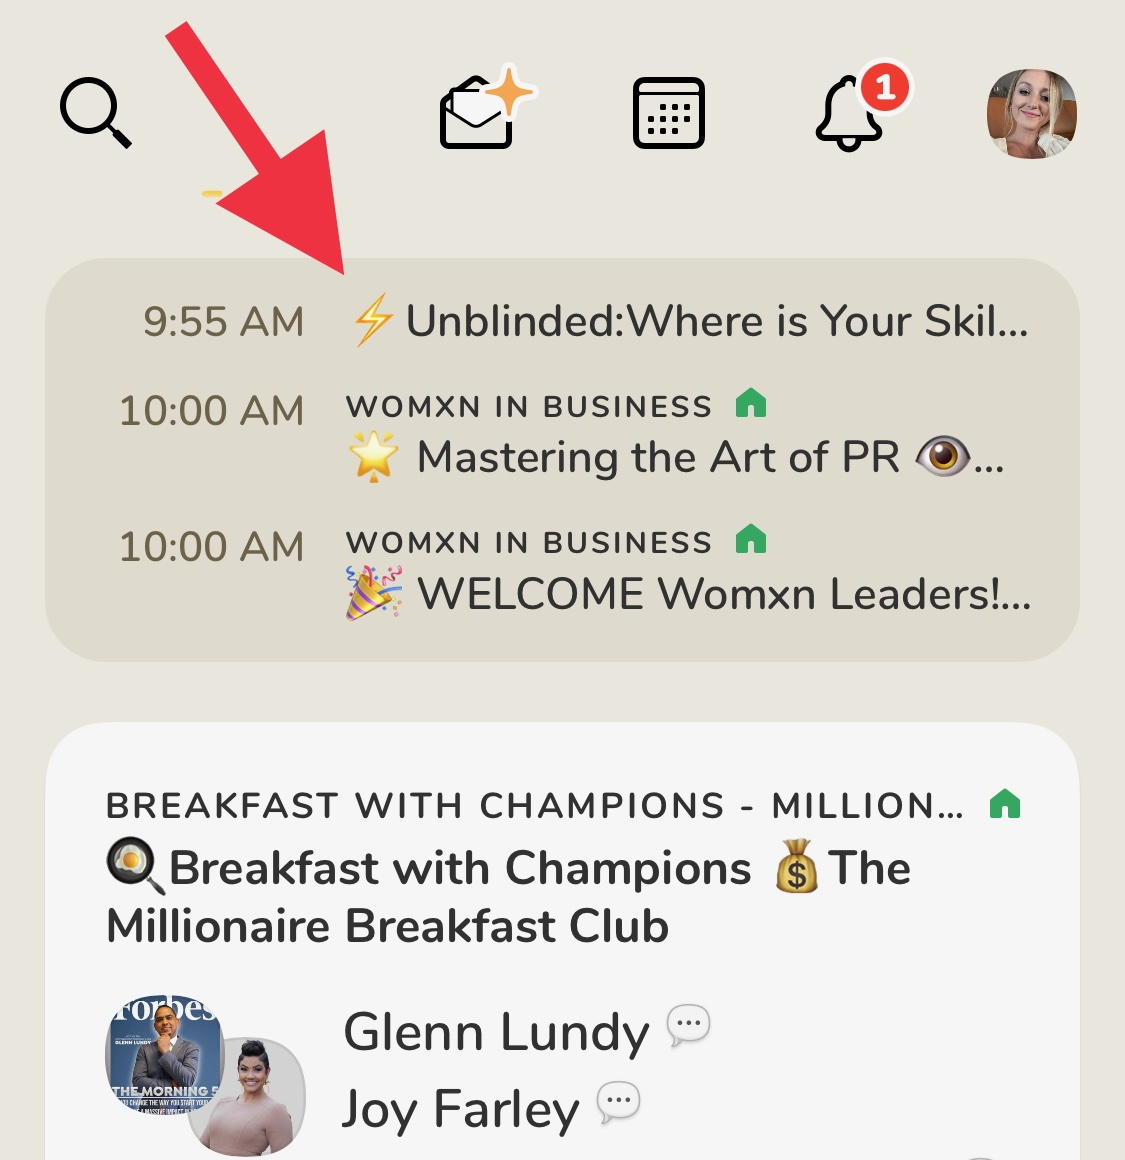 How to find upcoming events in clubhouse